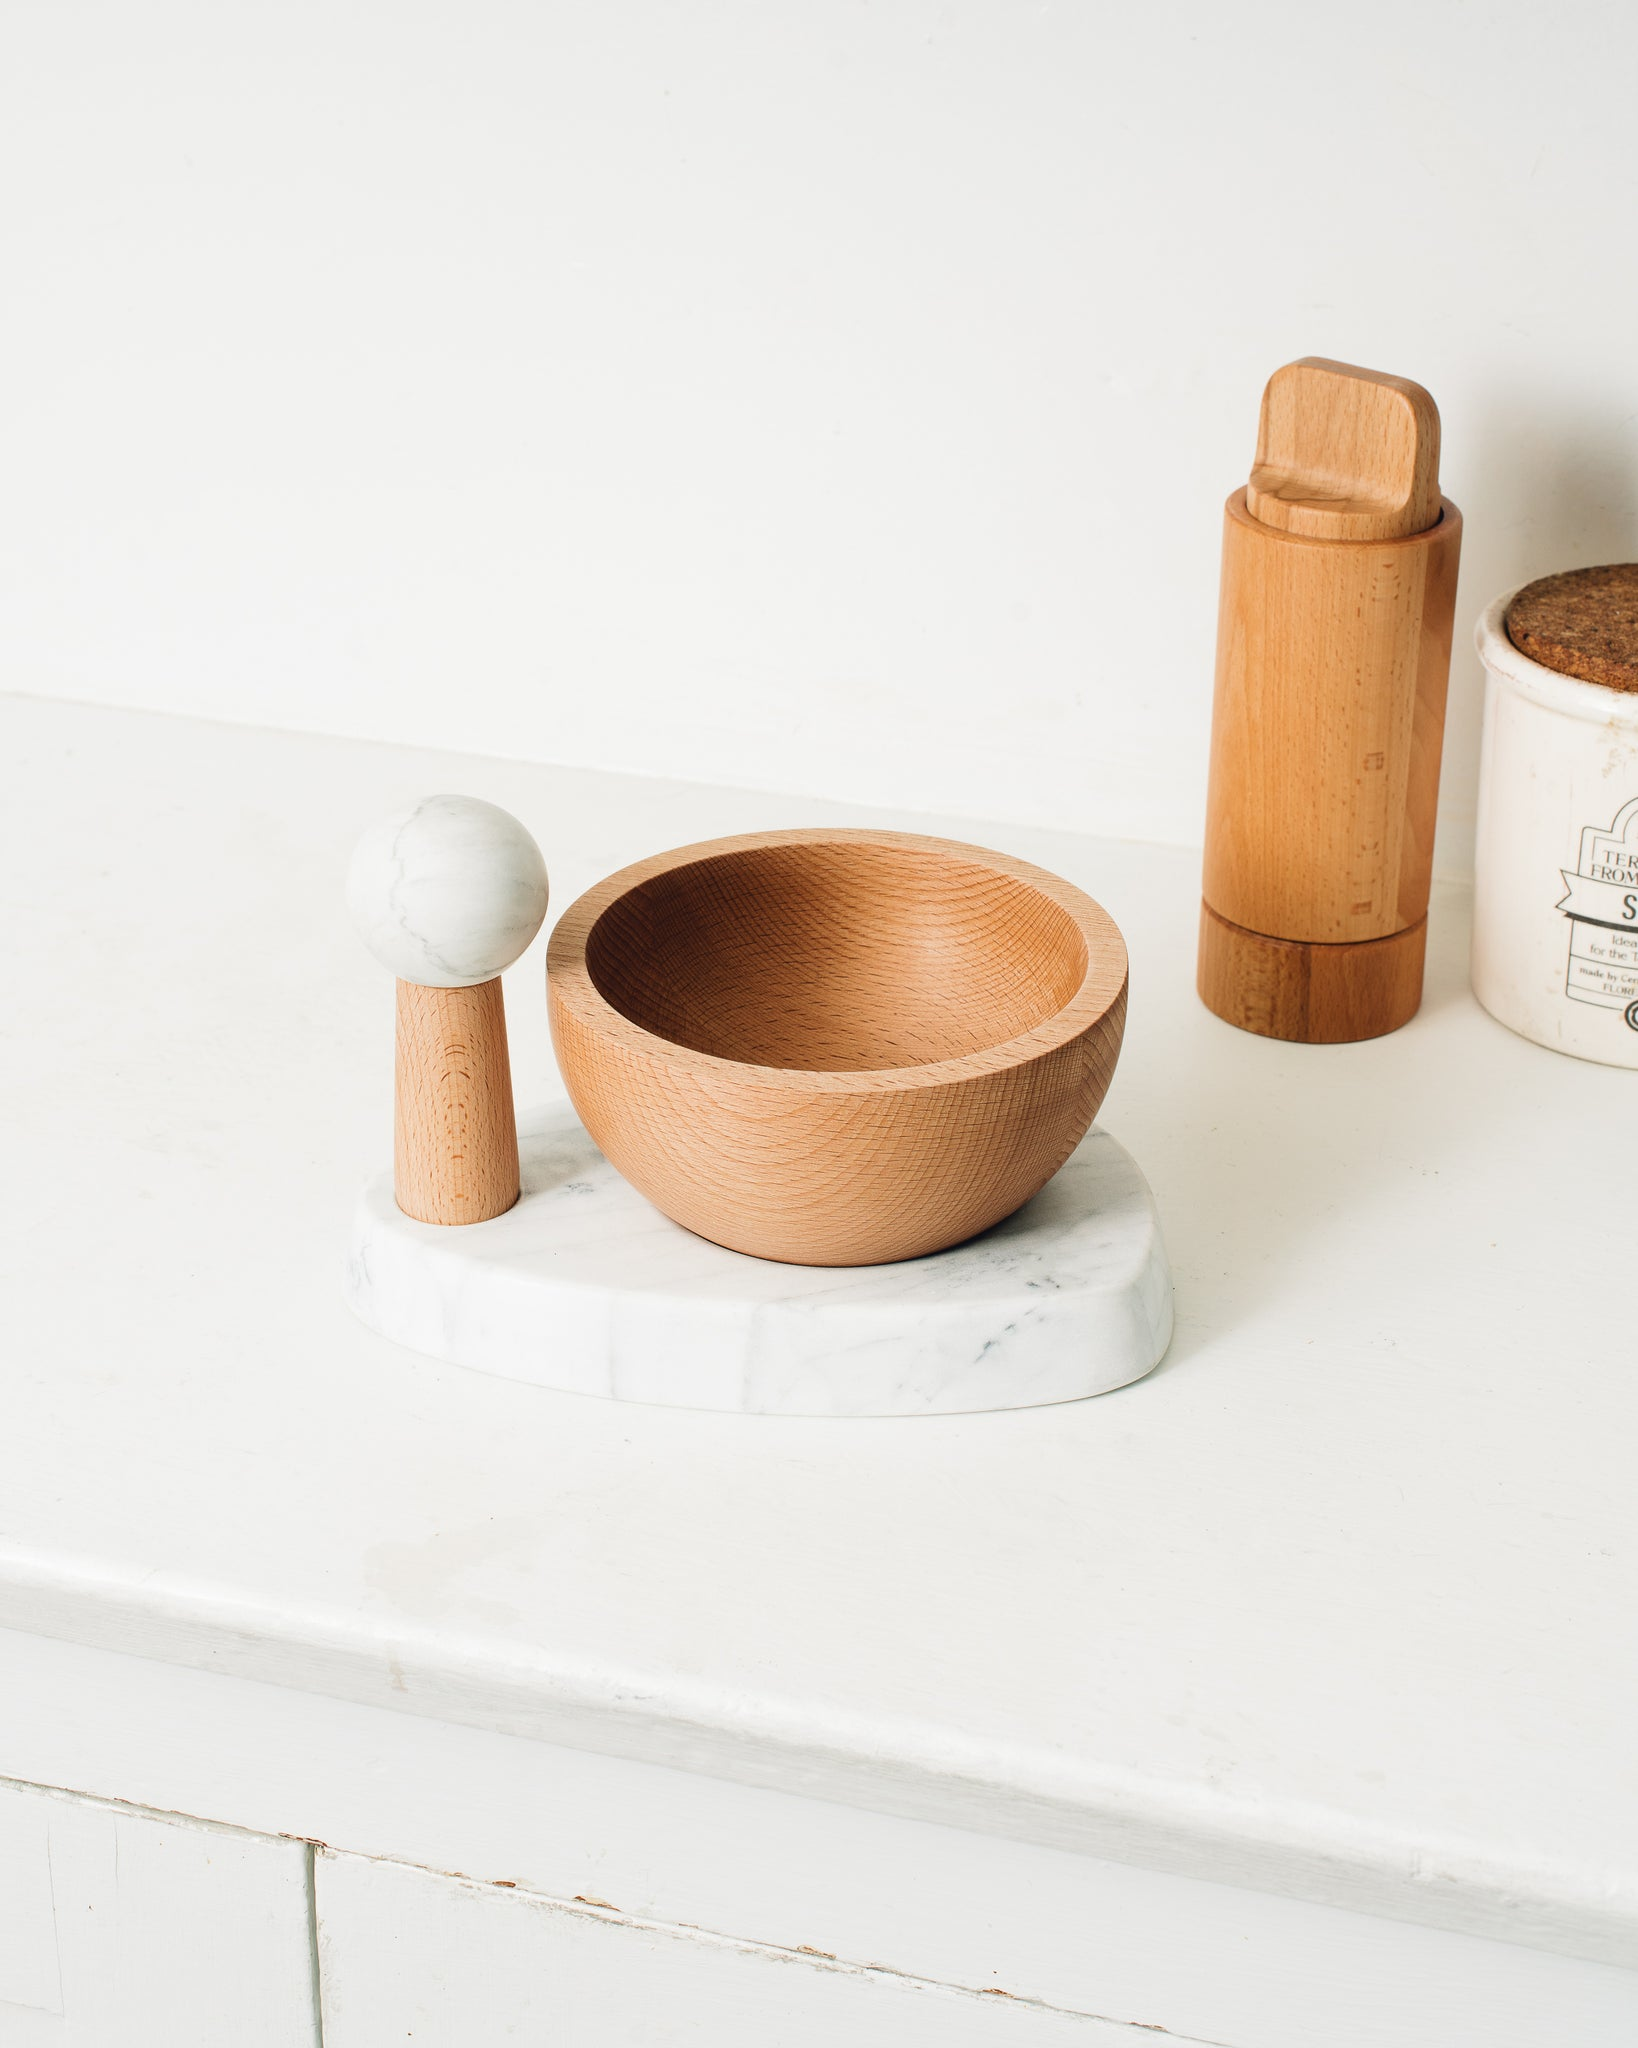 Umbra Studio Crux Mortar & Pestle